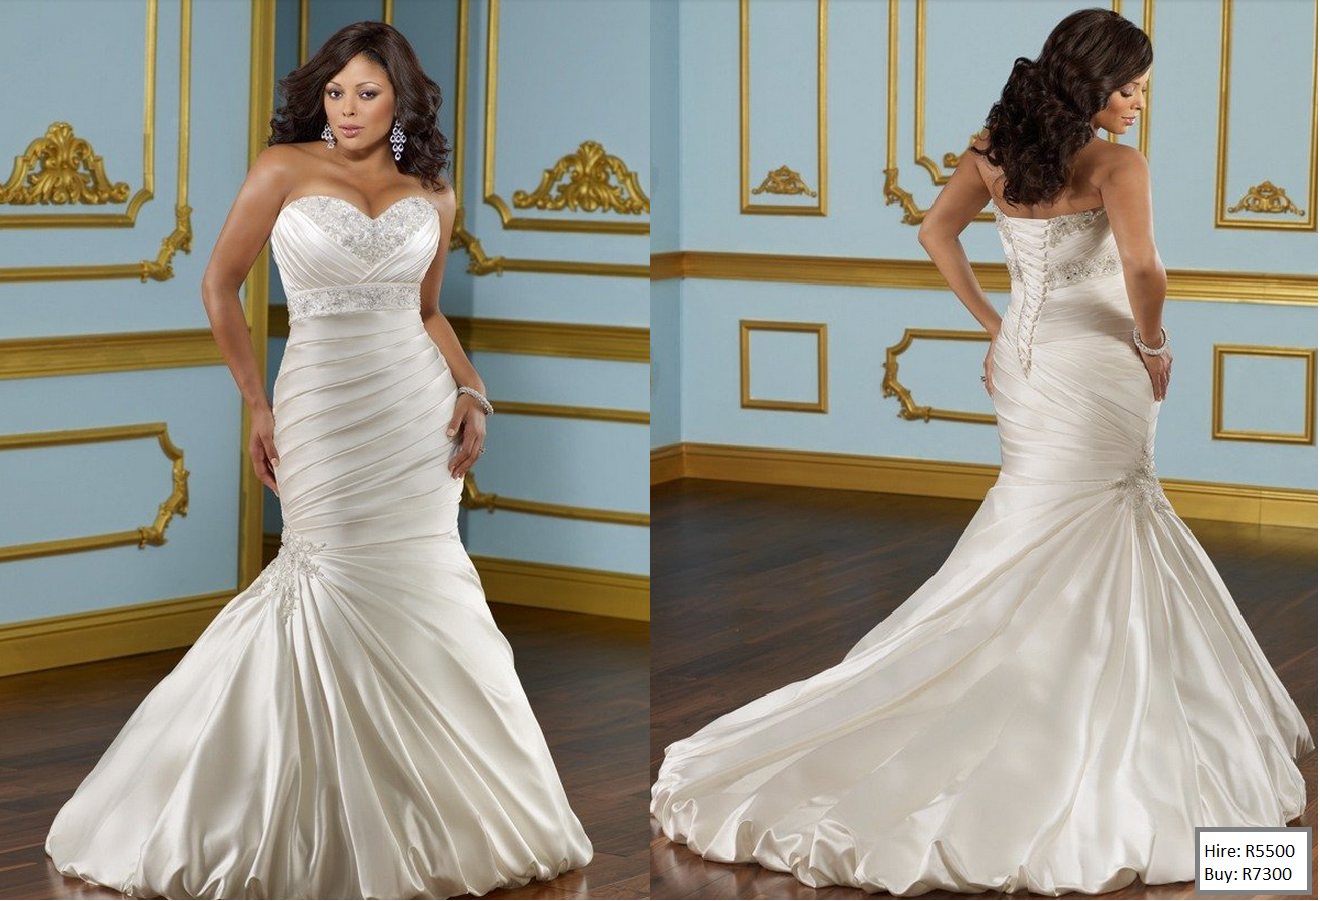 Fabulous Wedding Dress Hire Plus Size Gown Dresses With Auckland